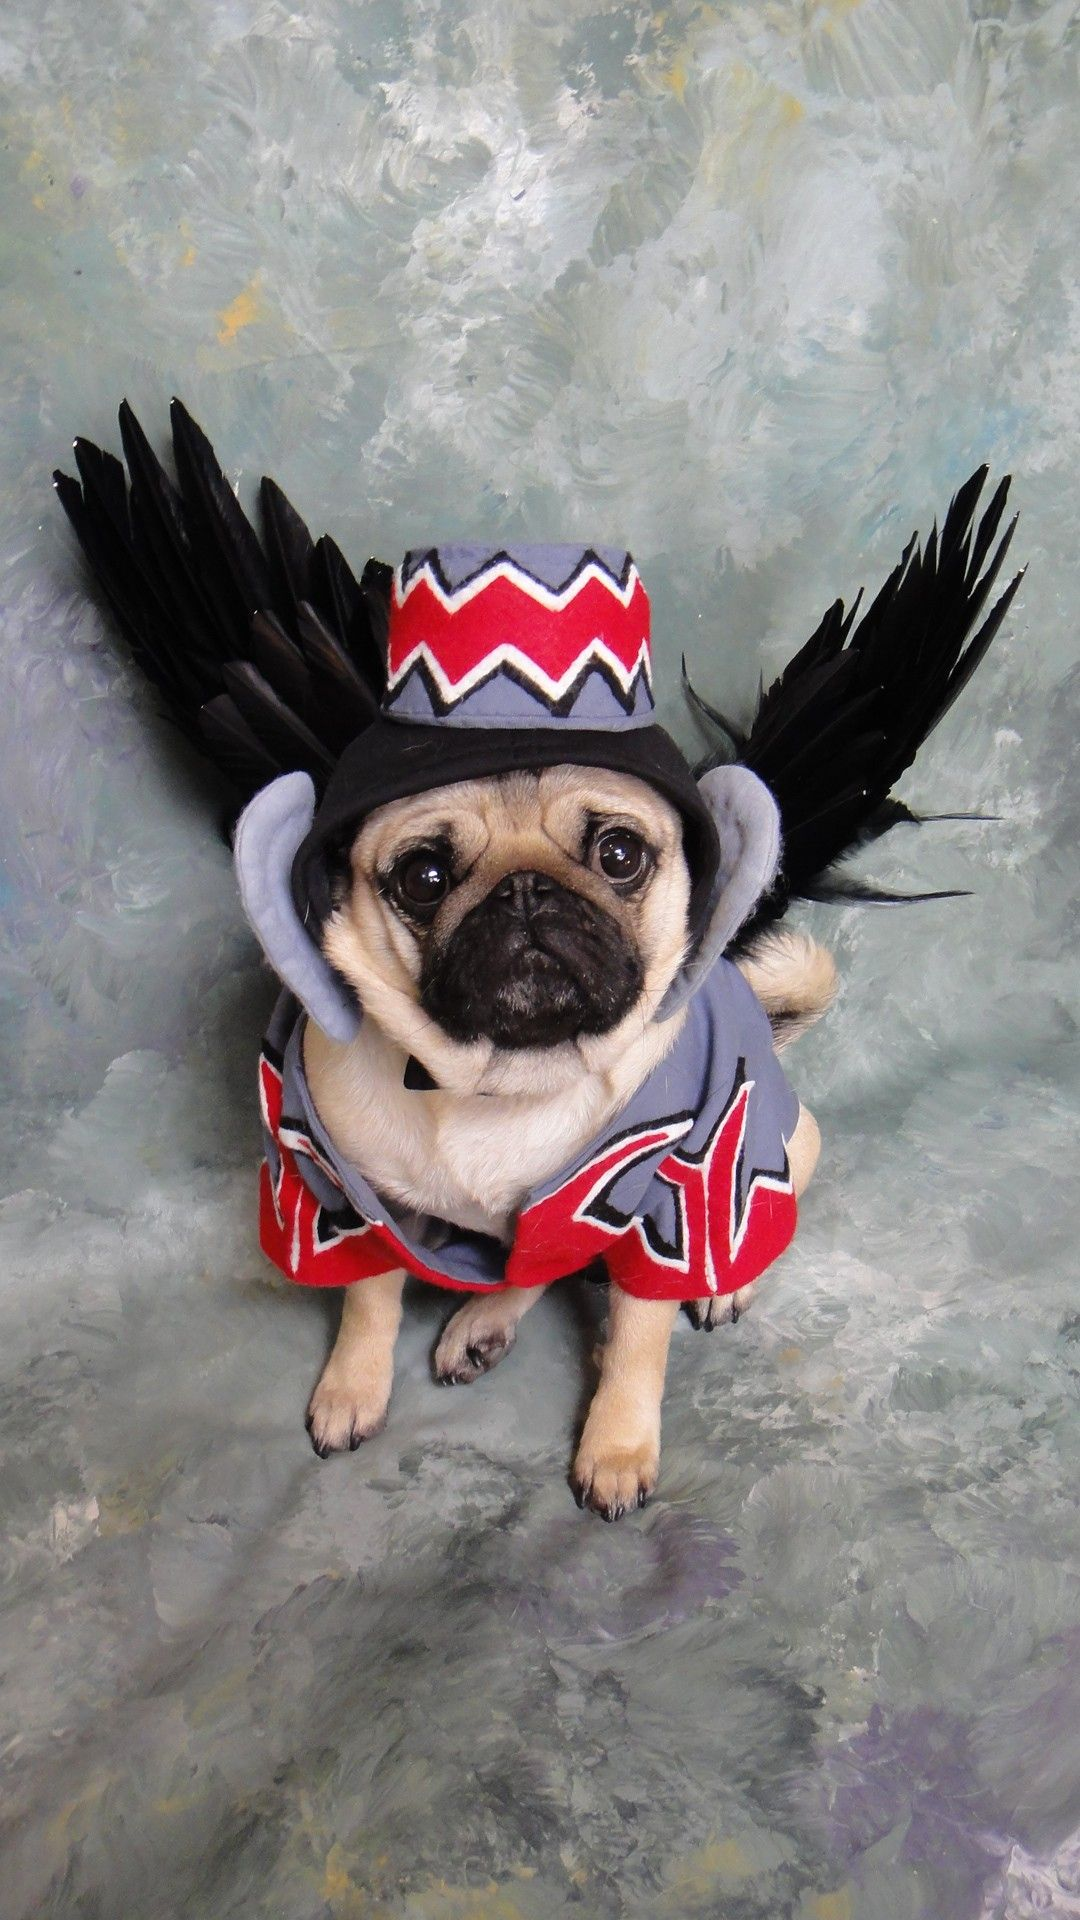 Flying monkey dog costume. Okay, this is just beyond cute. I want ...